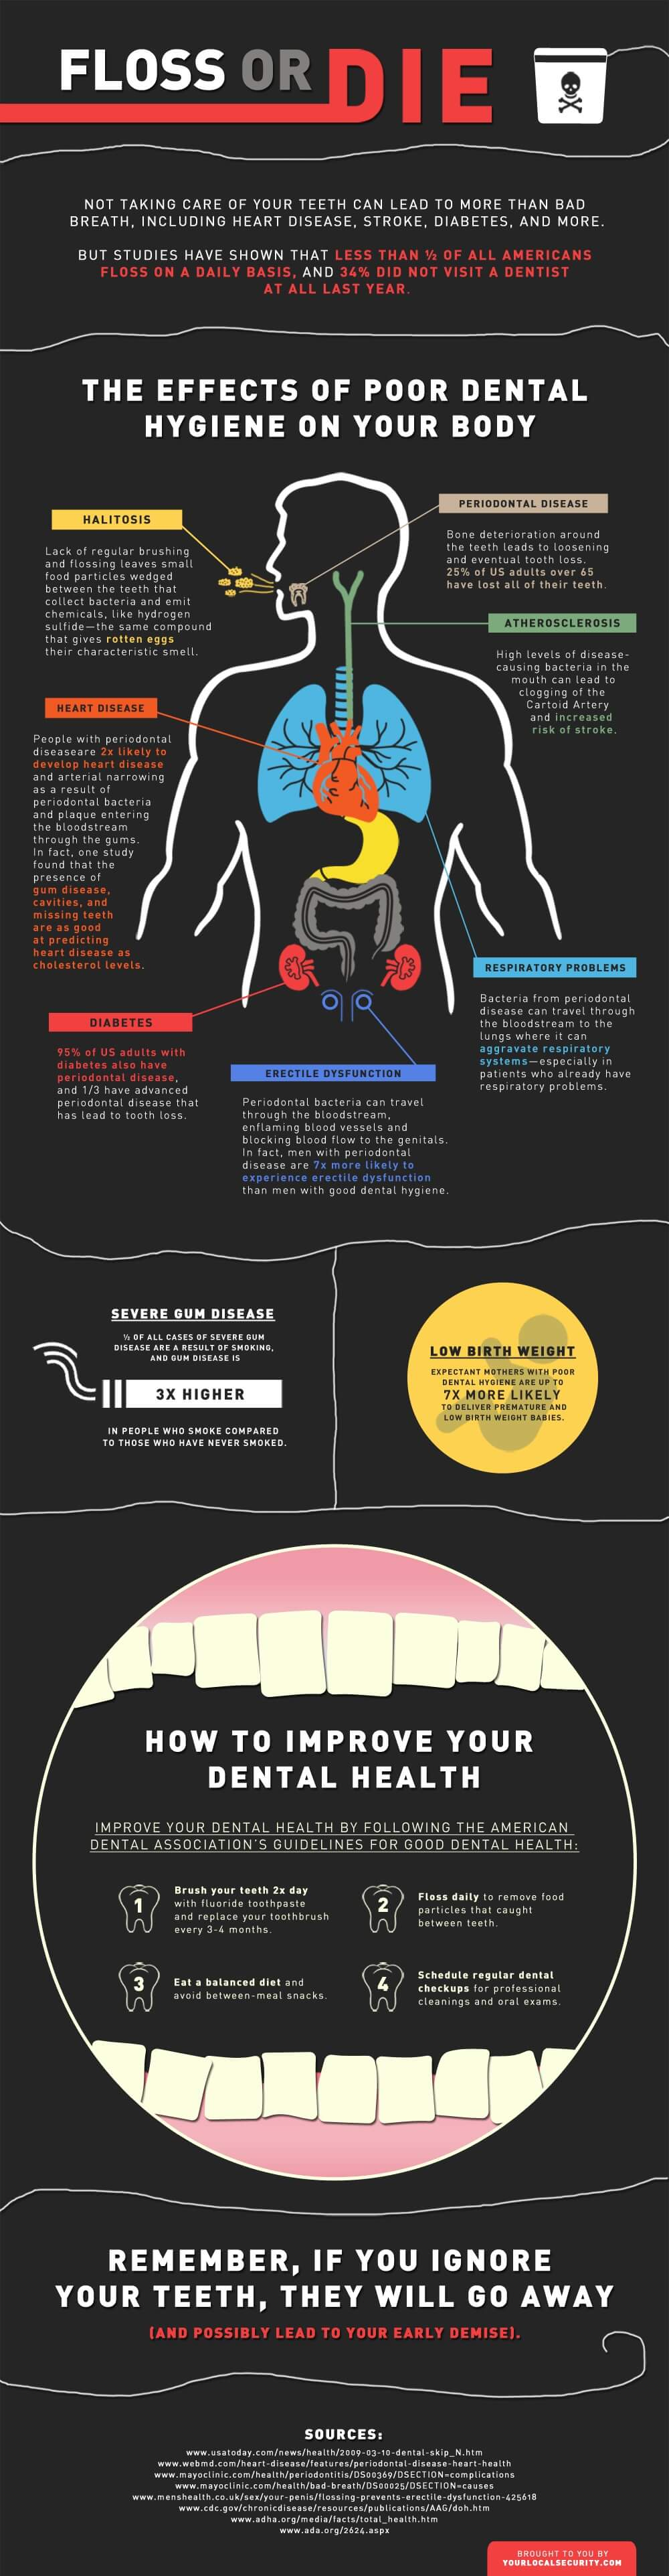 Floss or Die Infographic